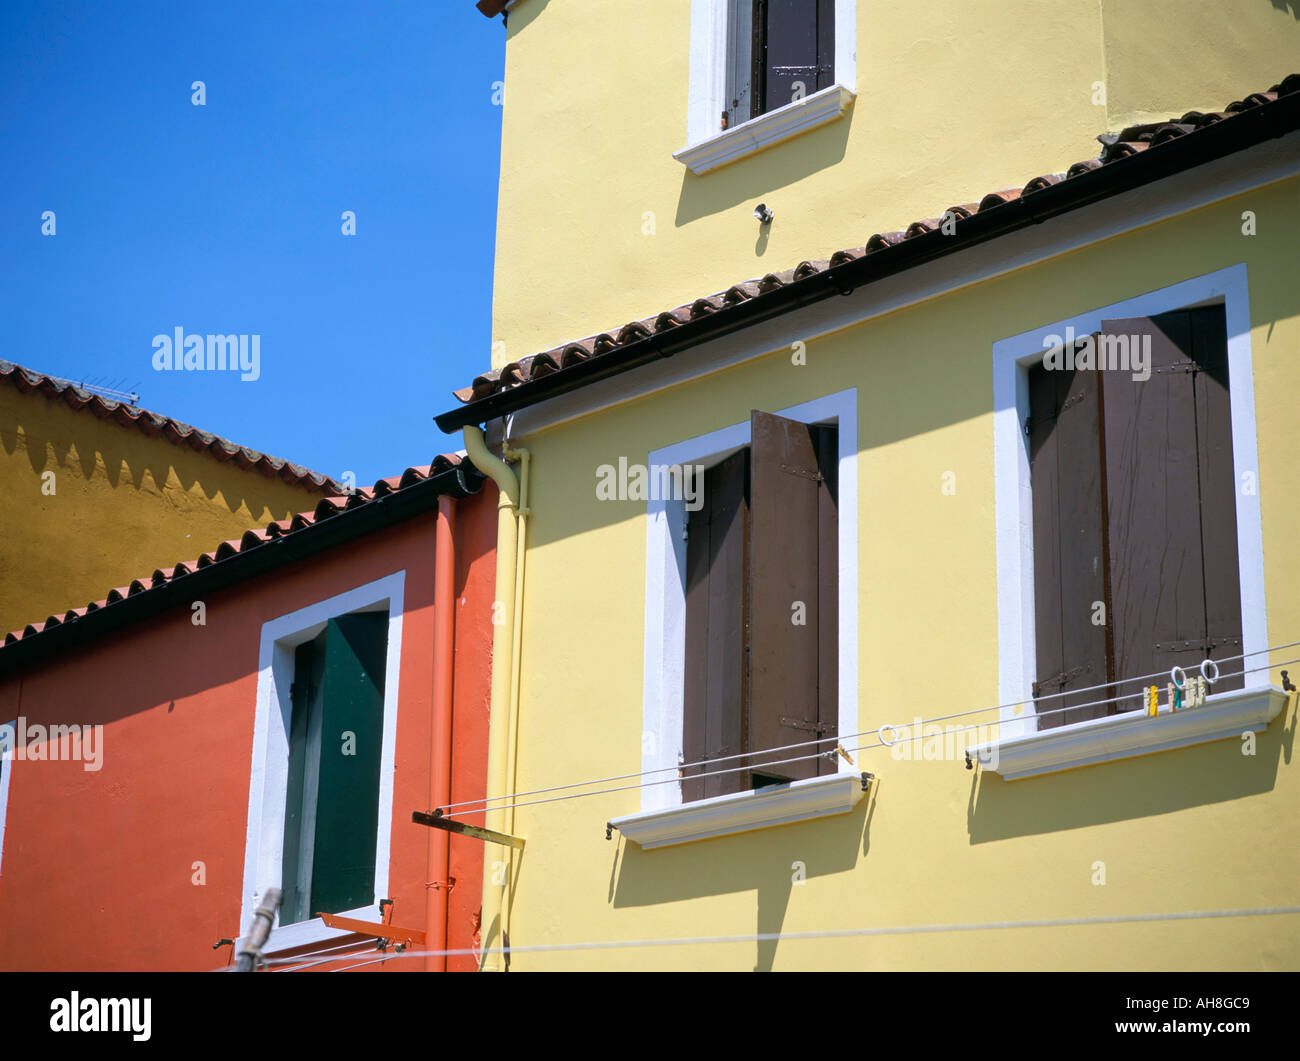 Terracotta Painted Walls Stock Photos & Terracotta Painted Walls ...